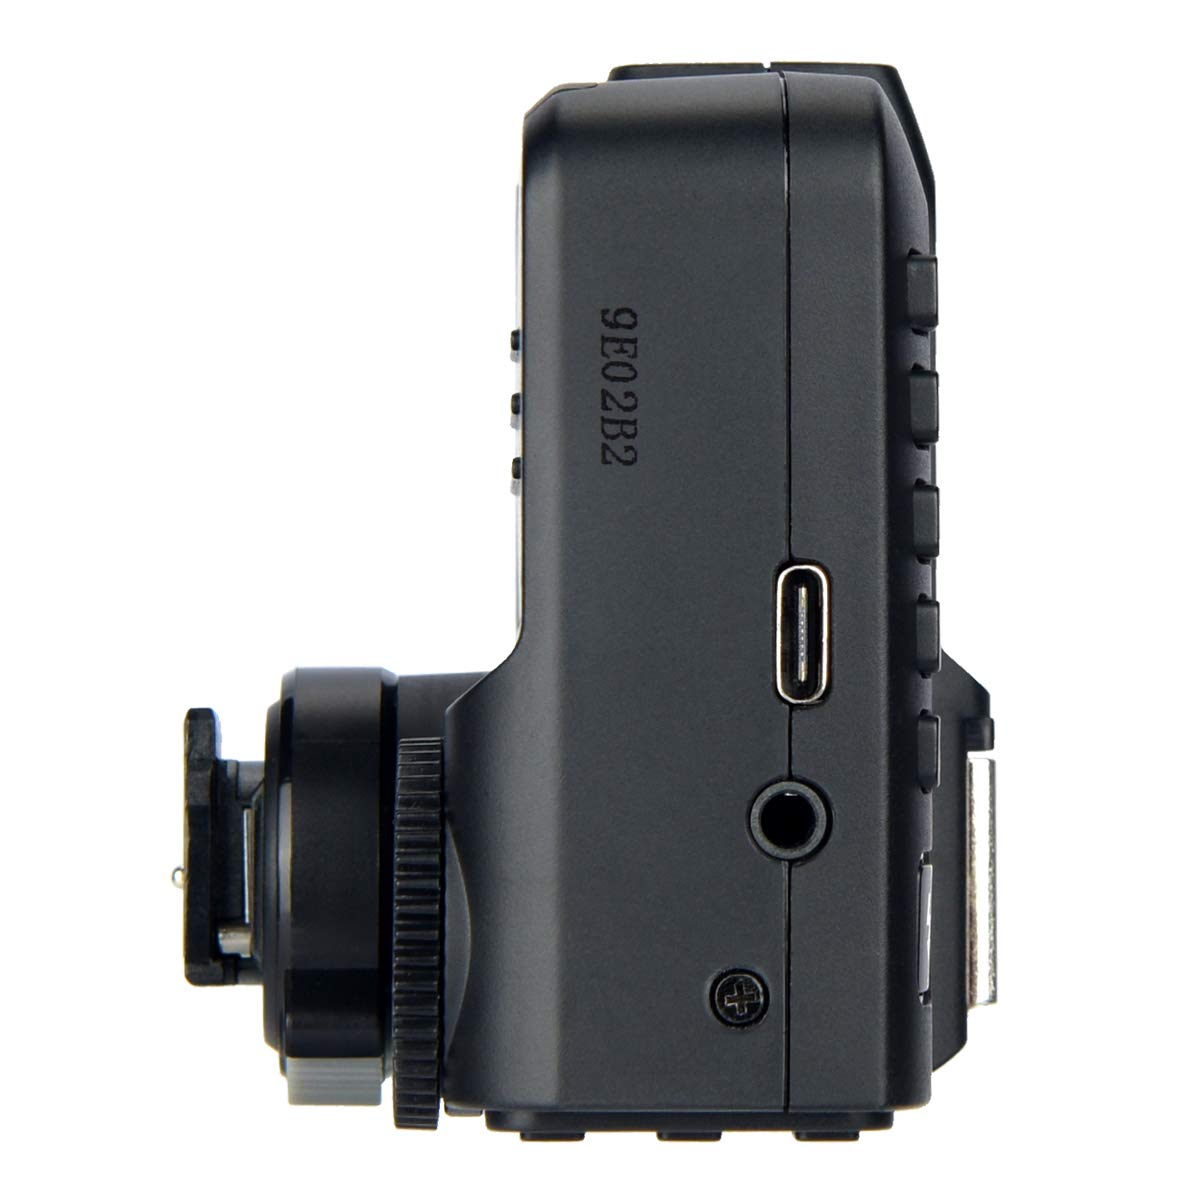 Godox X2T-S TTL Wireless Trigger, 1/8000s High-Speed Sync 2.4G TTL Transmitter, Compatible with Sony DSLR (X2T-S) by Godox (Image #4)